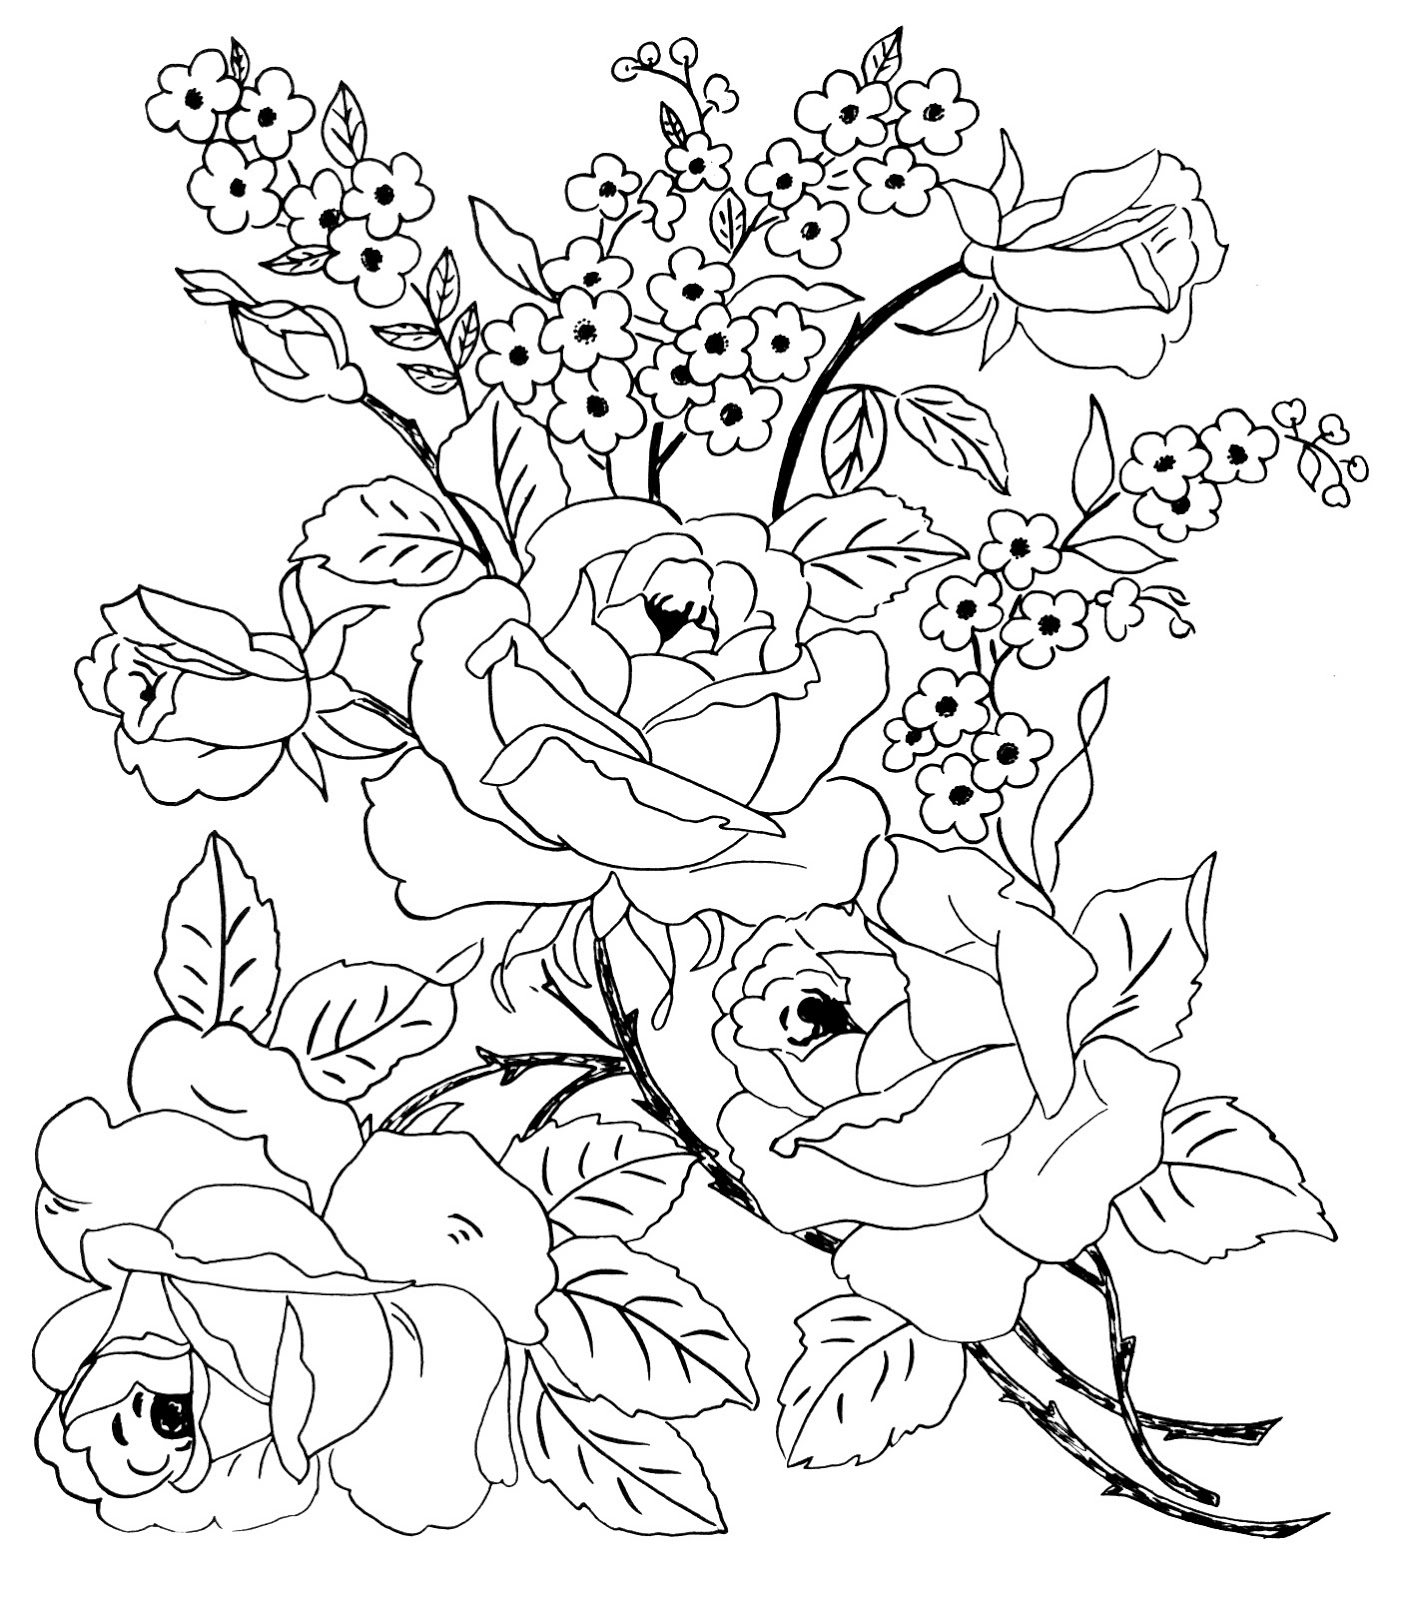 Coloring Pages Of Cool Flower Designs Digital Two for...